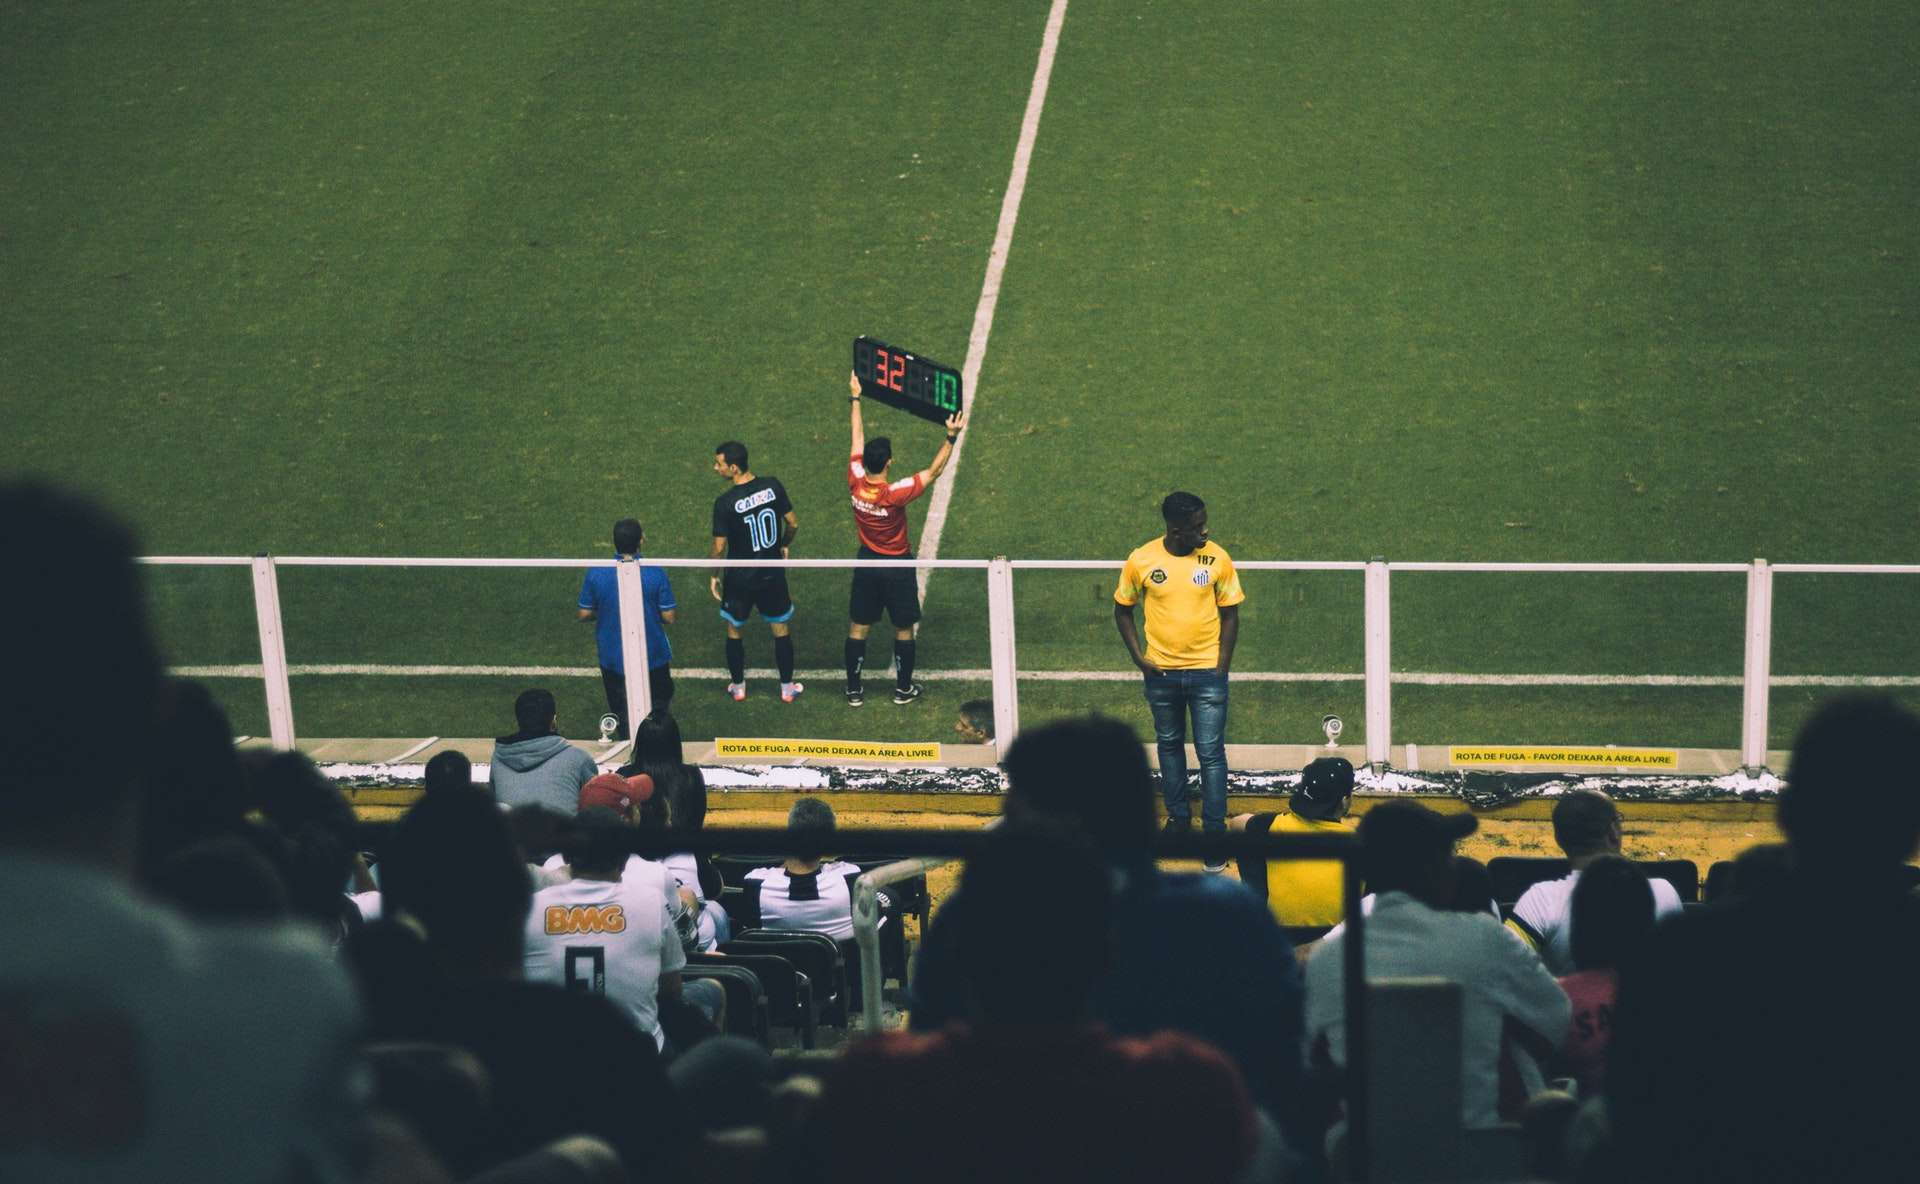 Timewatch scheduling syncs with Outlook, Office 365, Exchange, and Google and is best for your 2018 World Cup viewing needs (and business)